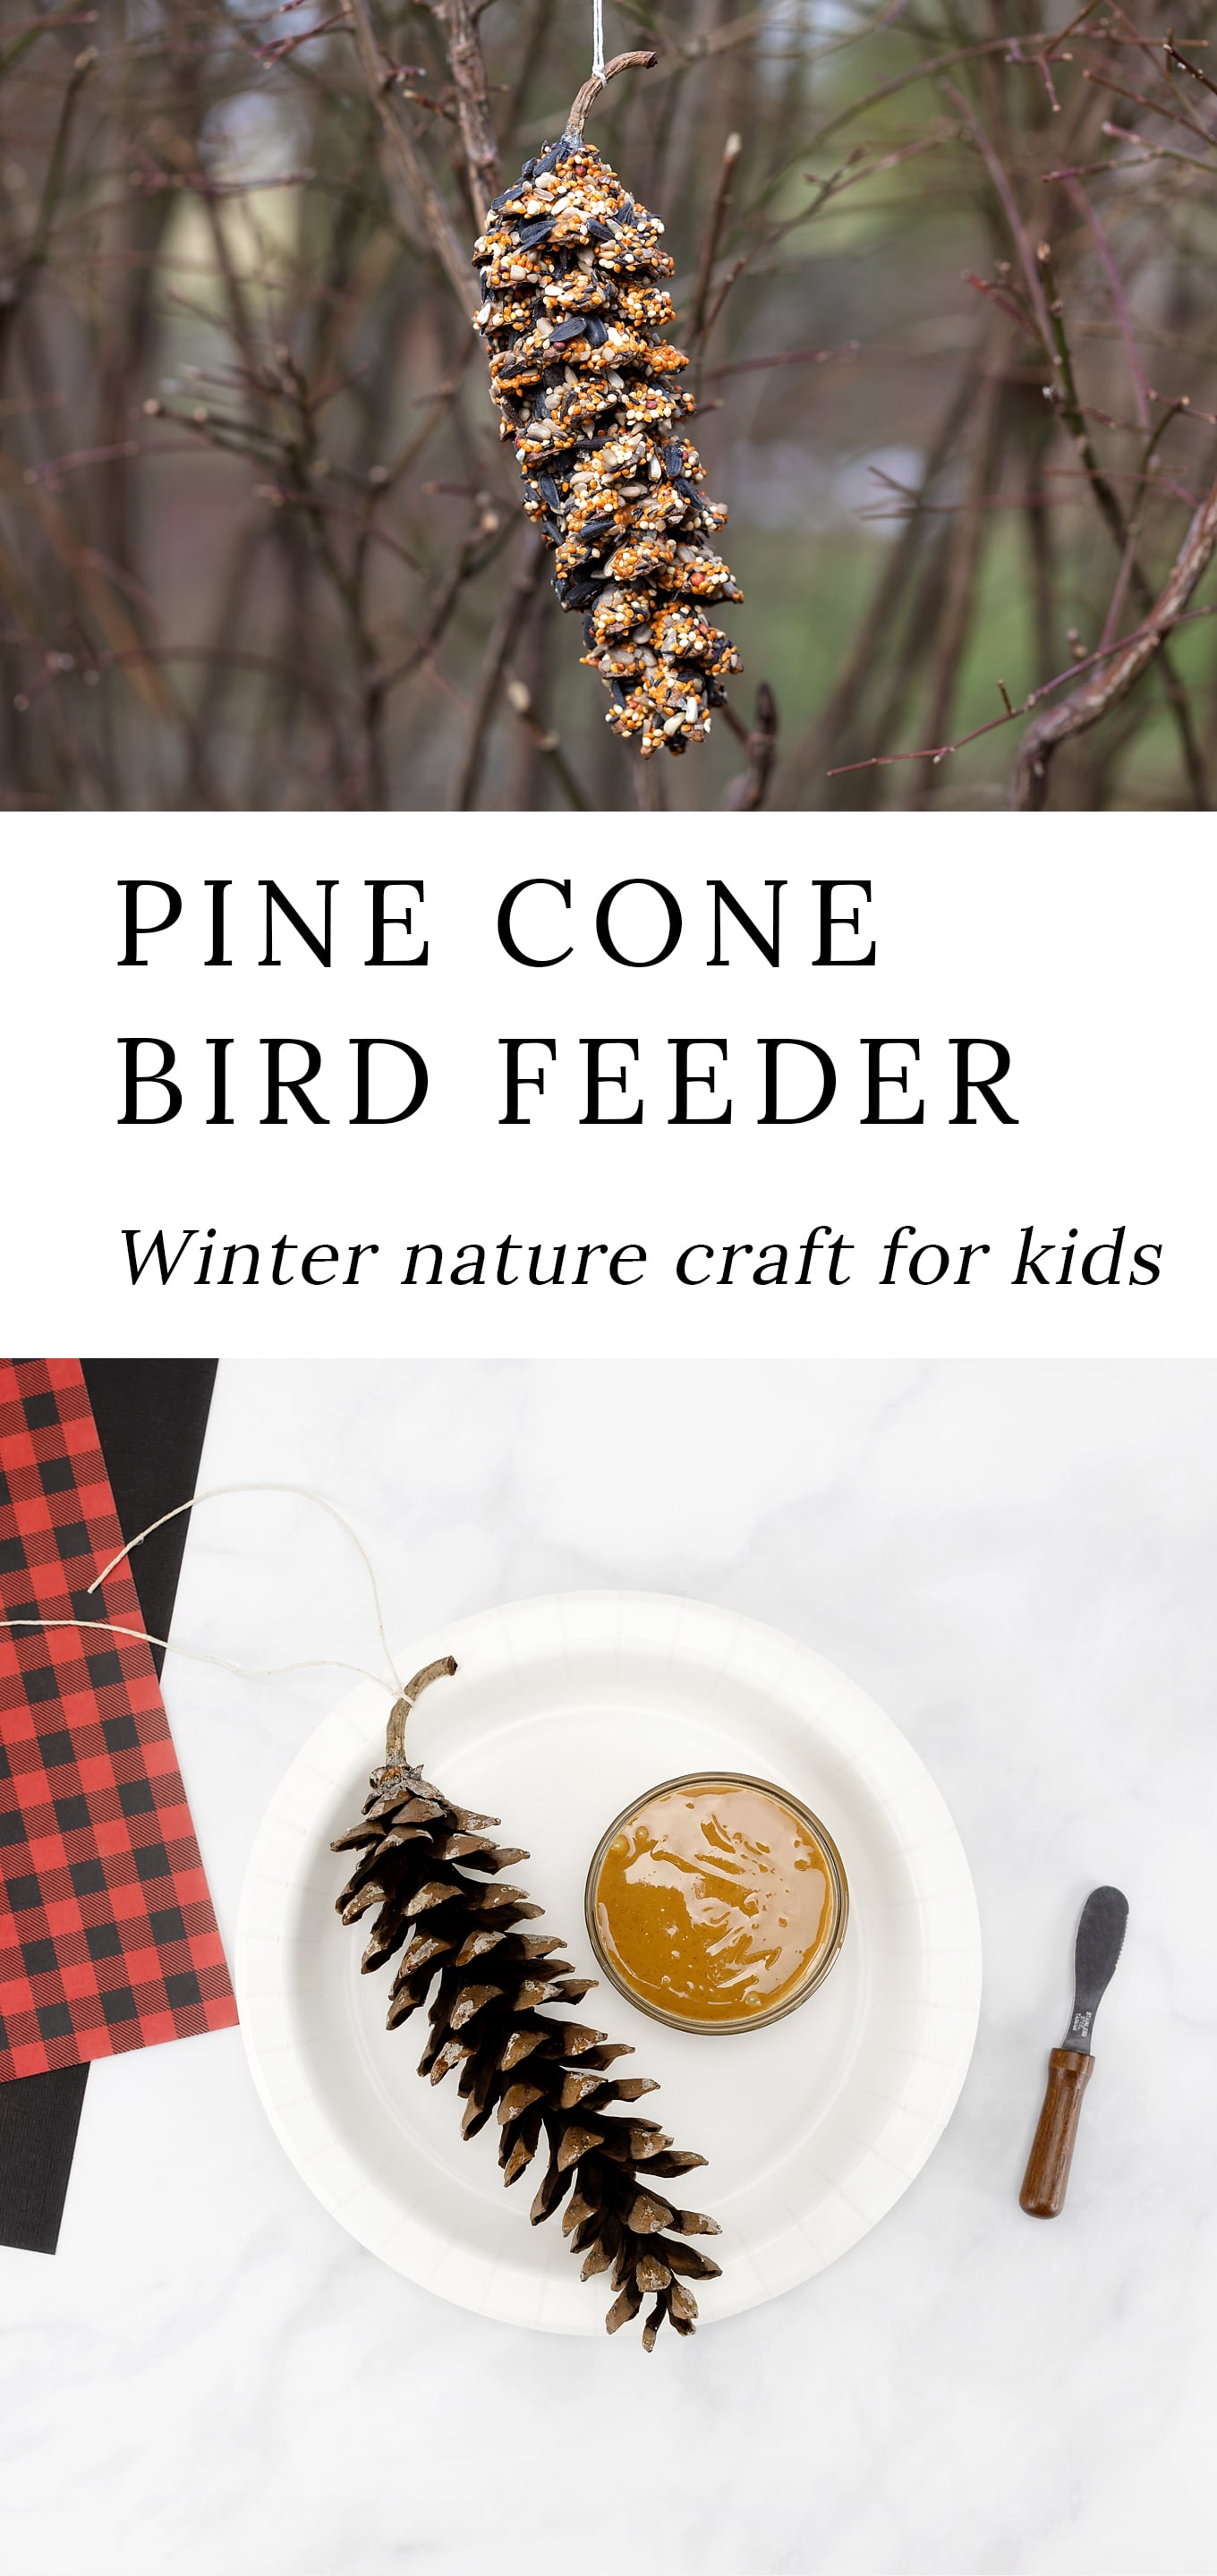 Directions, supplies, and tips for making a classic Pine Cone Bird Feeder, an easy way to provide a nutritious food source for birds while enjoying nature! #birdfeeder #pineconebirdfeeder via @firefliesandmudpies